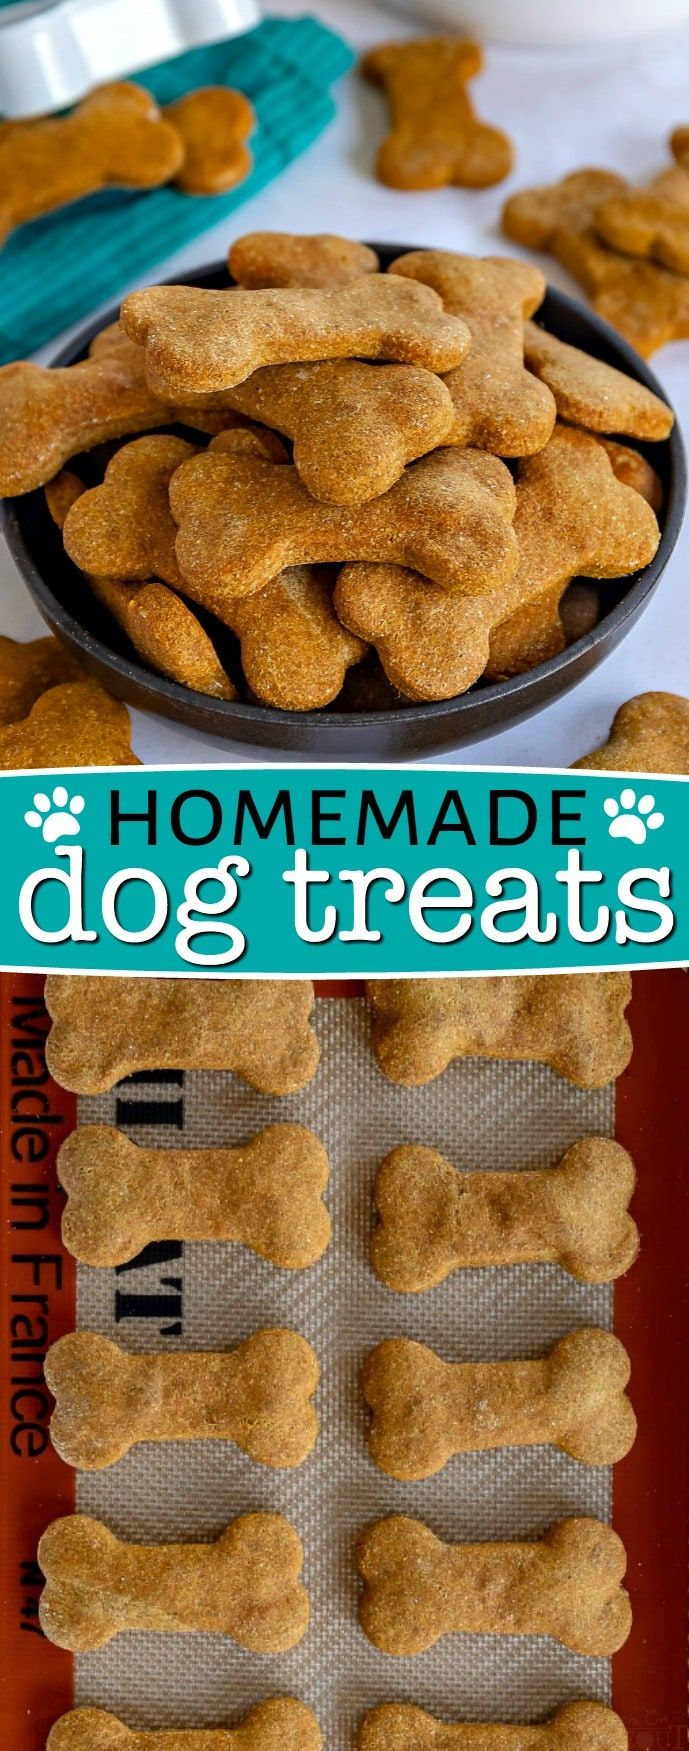 These Homemade Dog Treats Are Made With Peanut Butter And Pumpkin And Are Sure To B Dog Treats Homemade Easy Healthy Dog Treats Homemade Easy Dog Treat Recipes